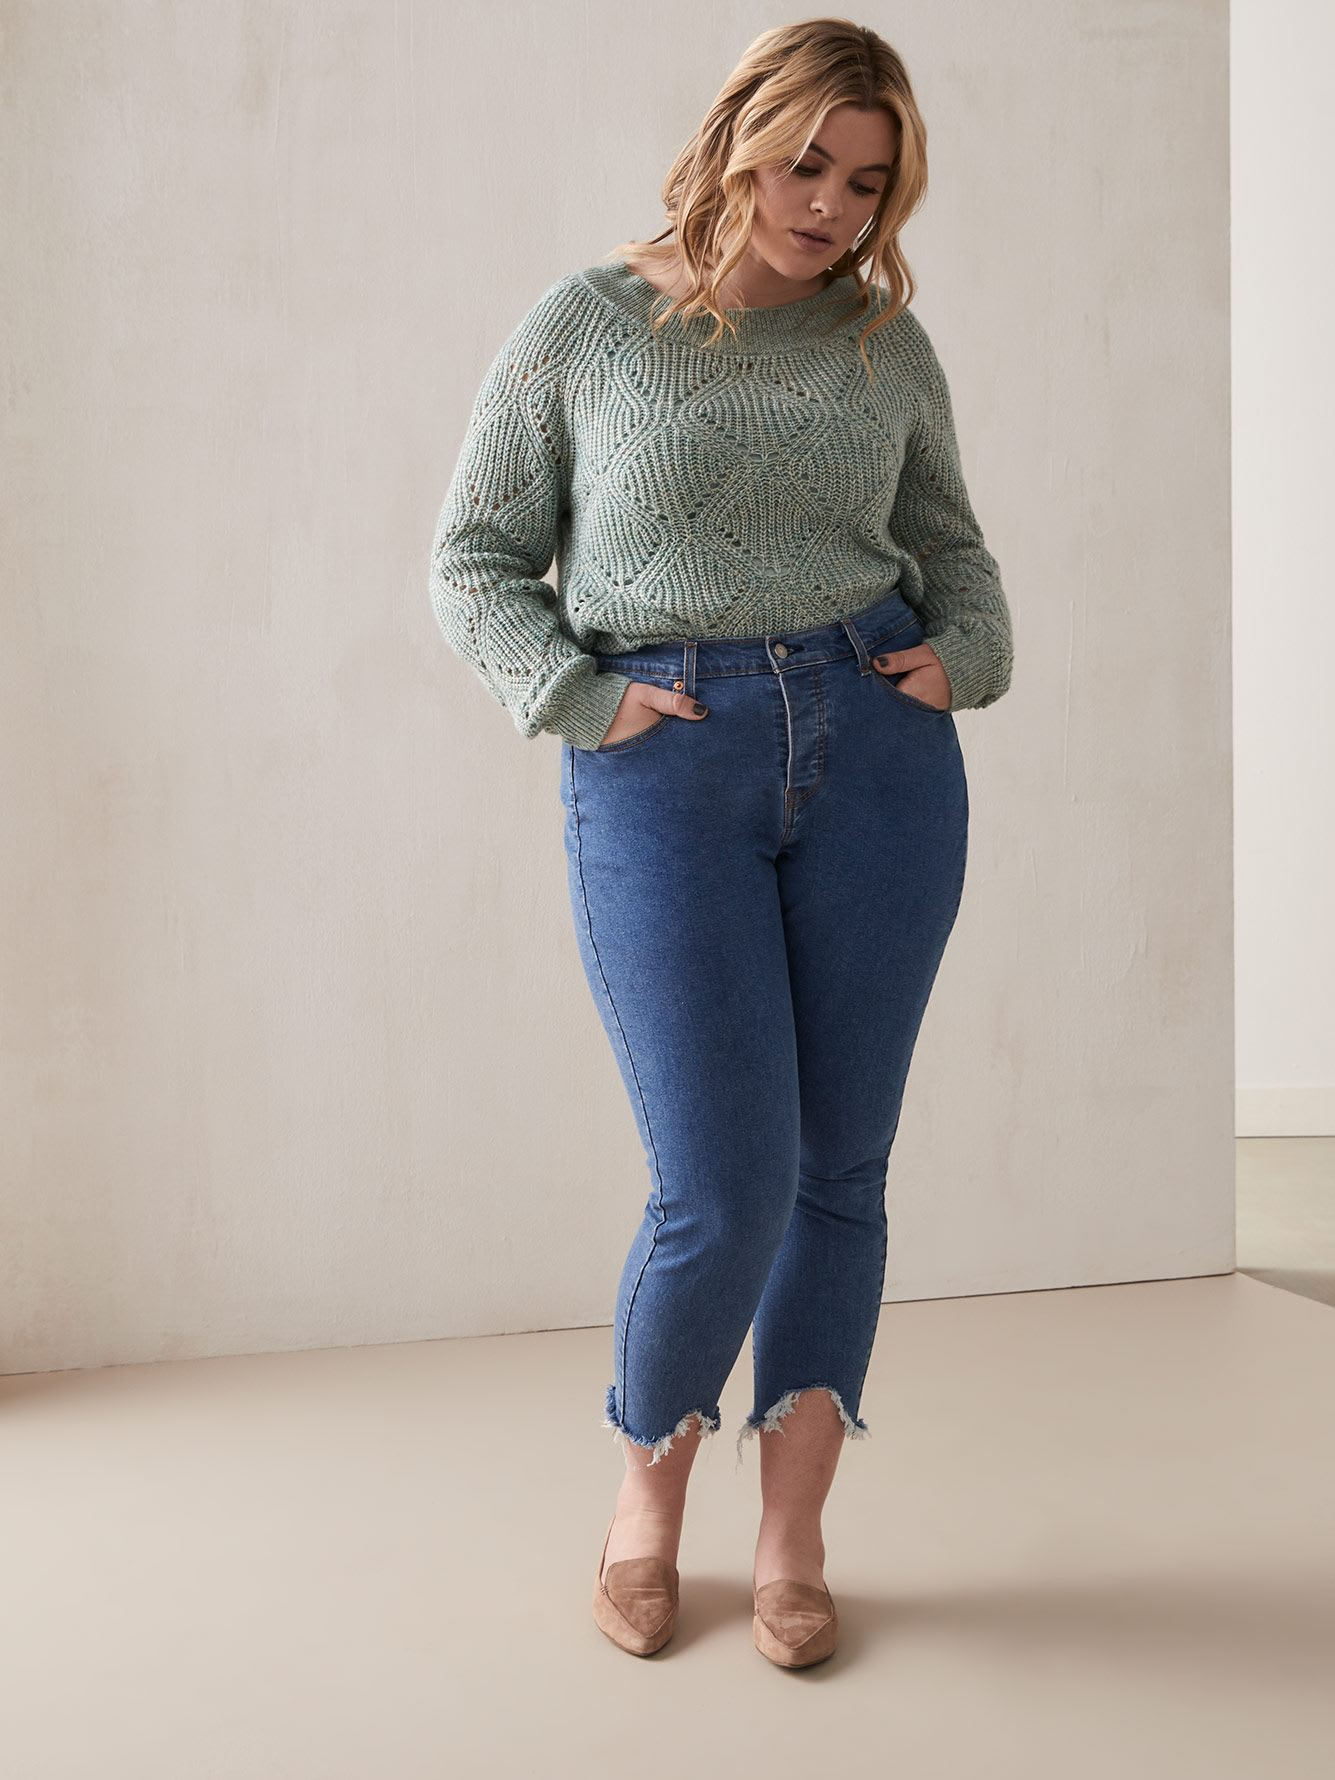 Stretchy High-Waisted Wedgie Skinny Jean - Levi's Premium